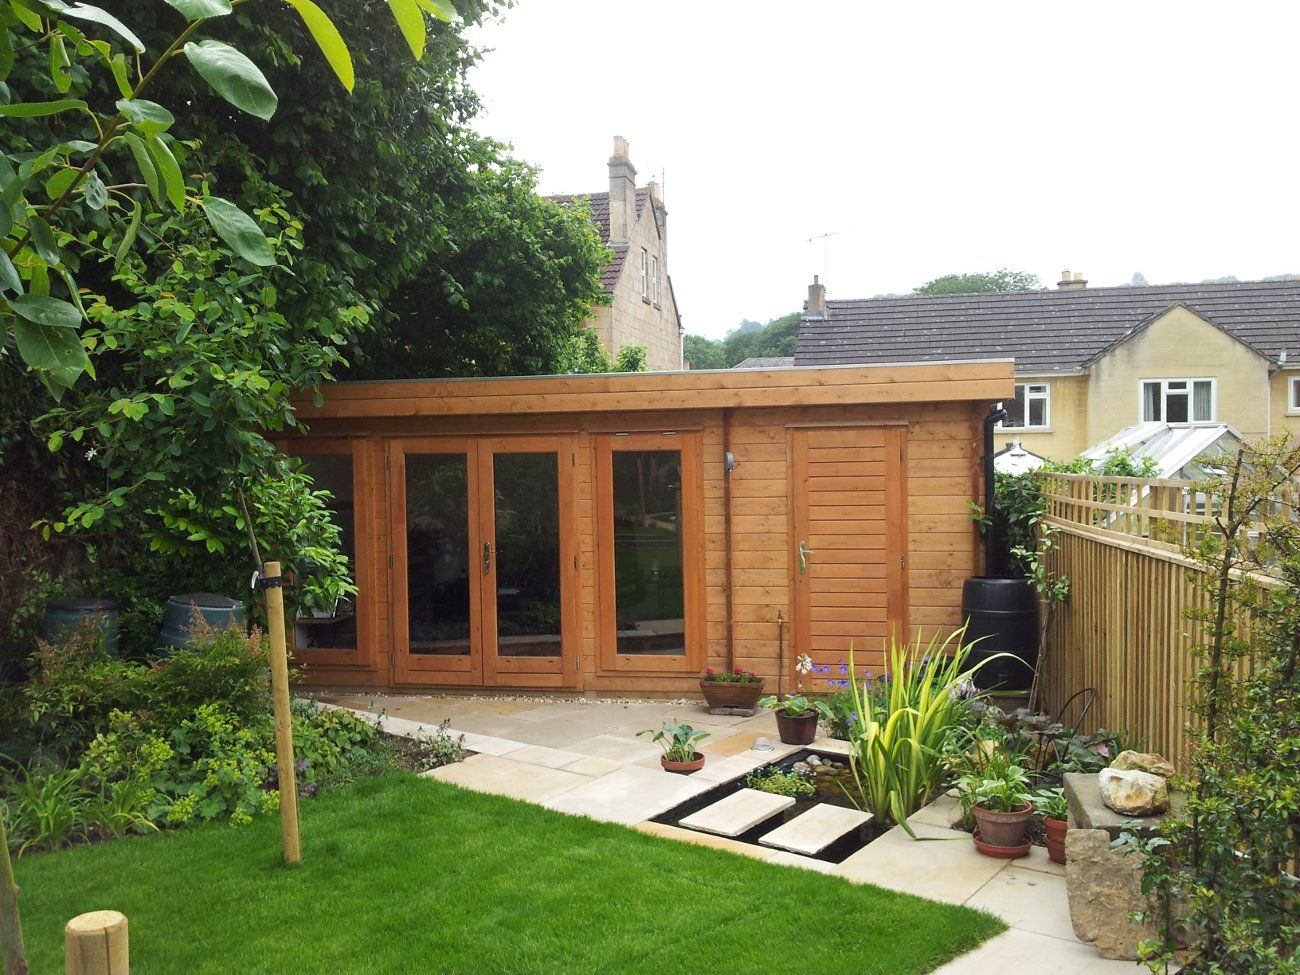 Summer house ideas google search garden offices sheds for In house garden ideas